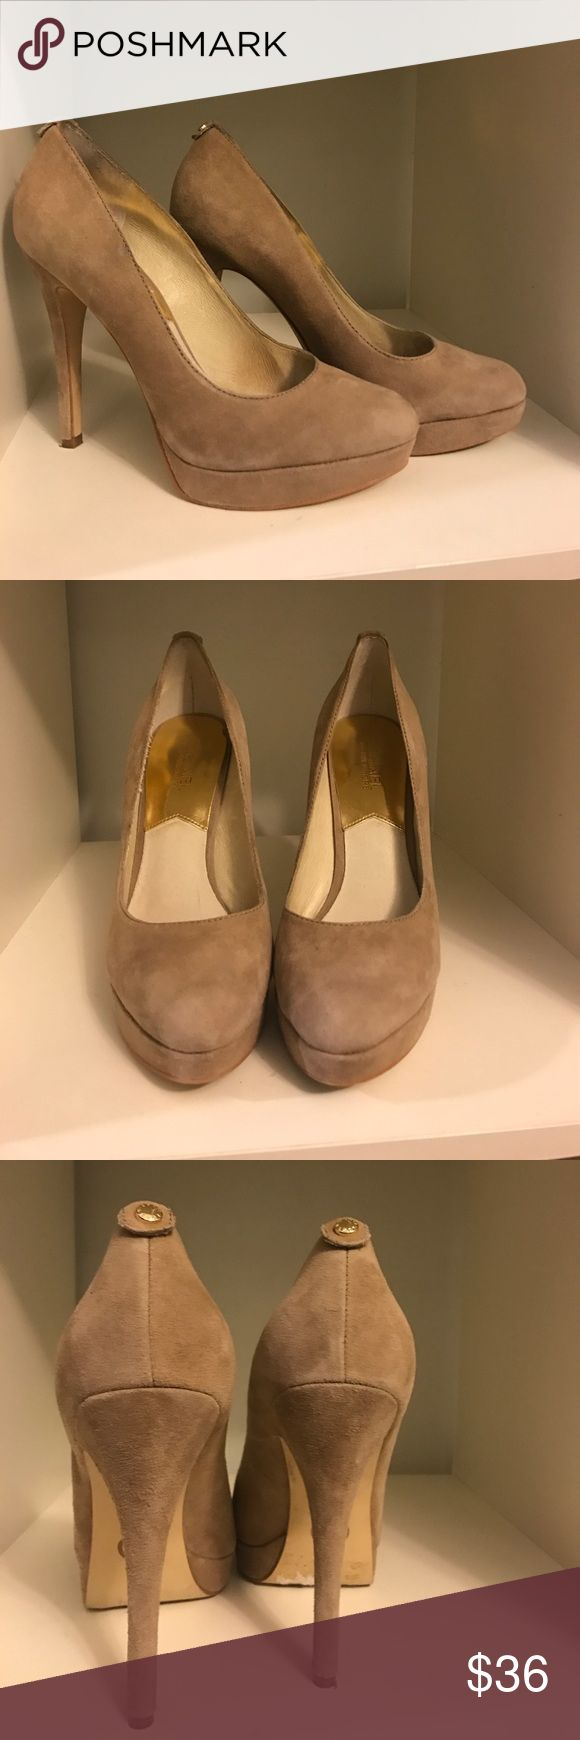 """Michael Michael Kors nude suede platform pumps Michael Michael Kors nude suede platform pumps. Like brand new. Only a bit of dirt on the bottoms. No wear to shoes at all. Heel is 5"""" total and platform is just under 1"""". MICHAEL Michael Kors Shoes Platforms"""